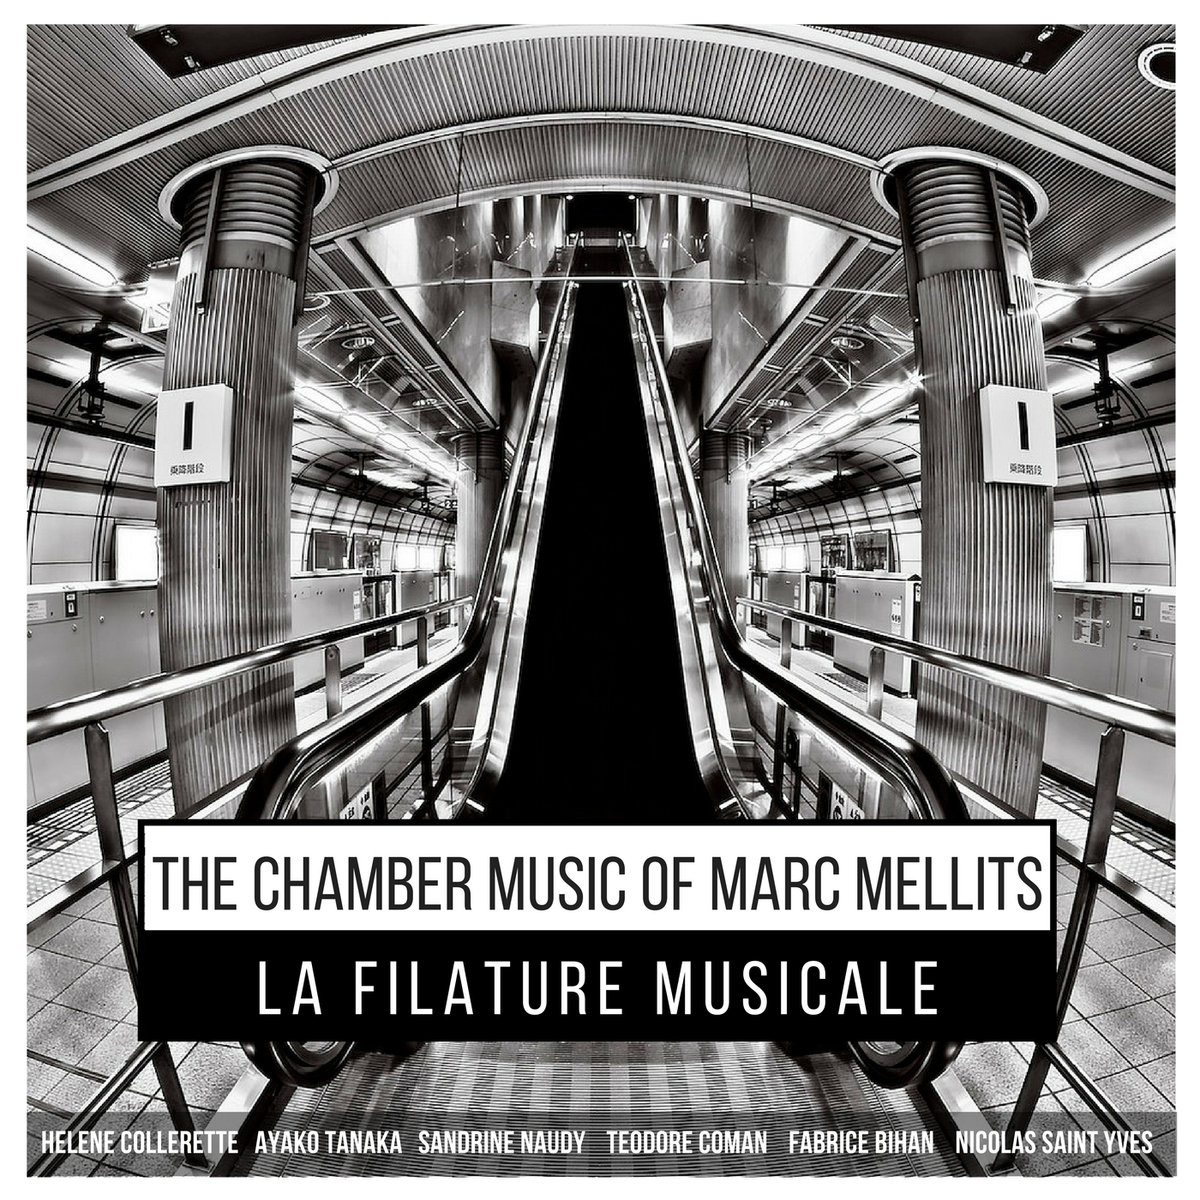 The Chamber Music of Marc Mellits